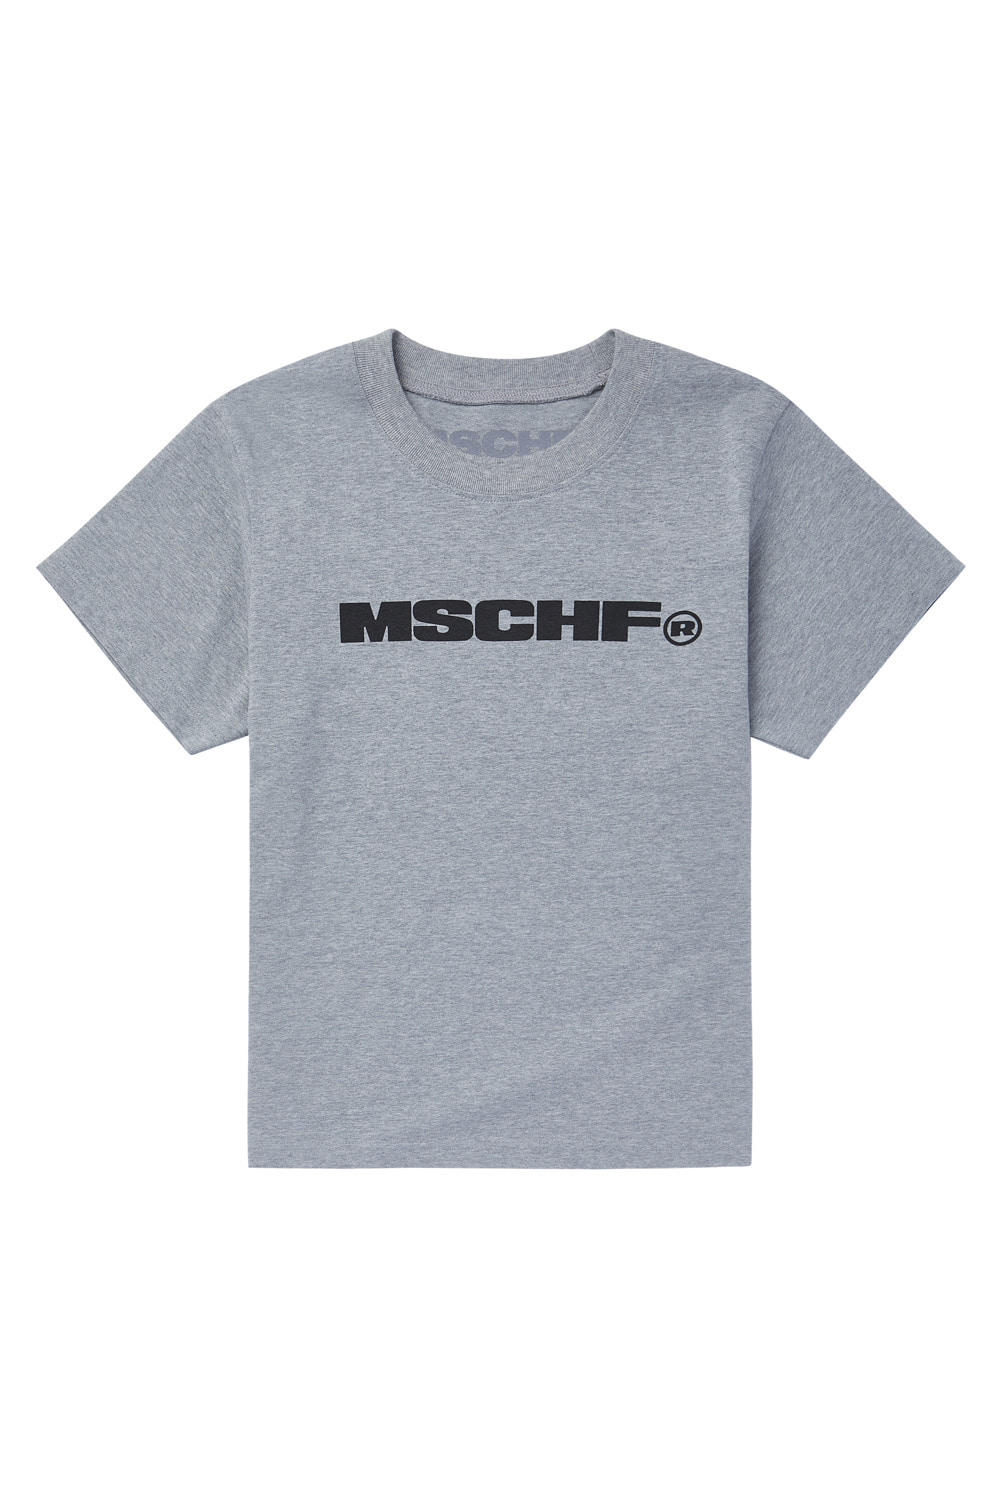 MSCHF_ROUNDED BASIC_melange gray